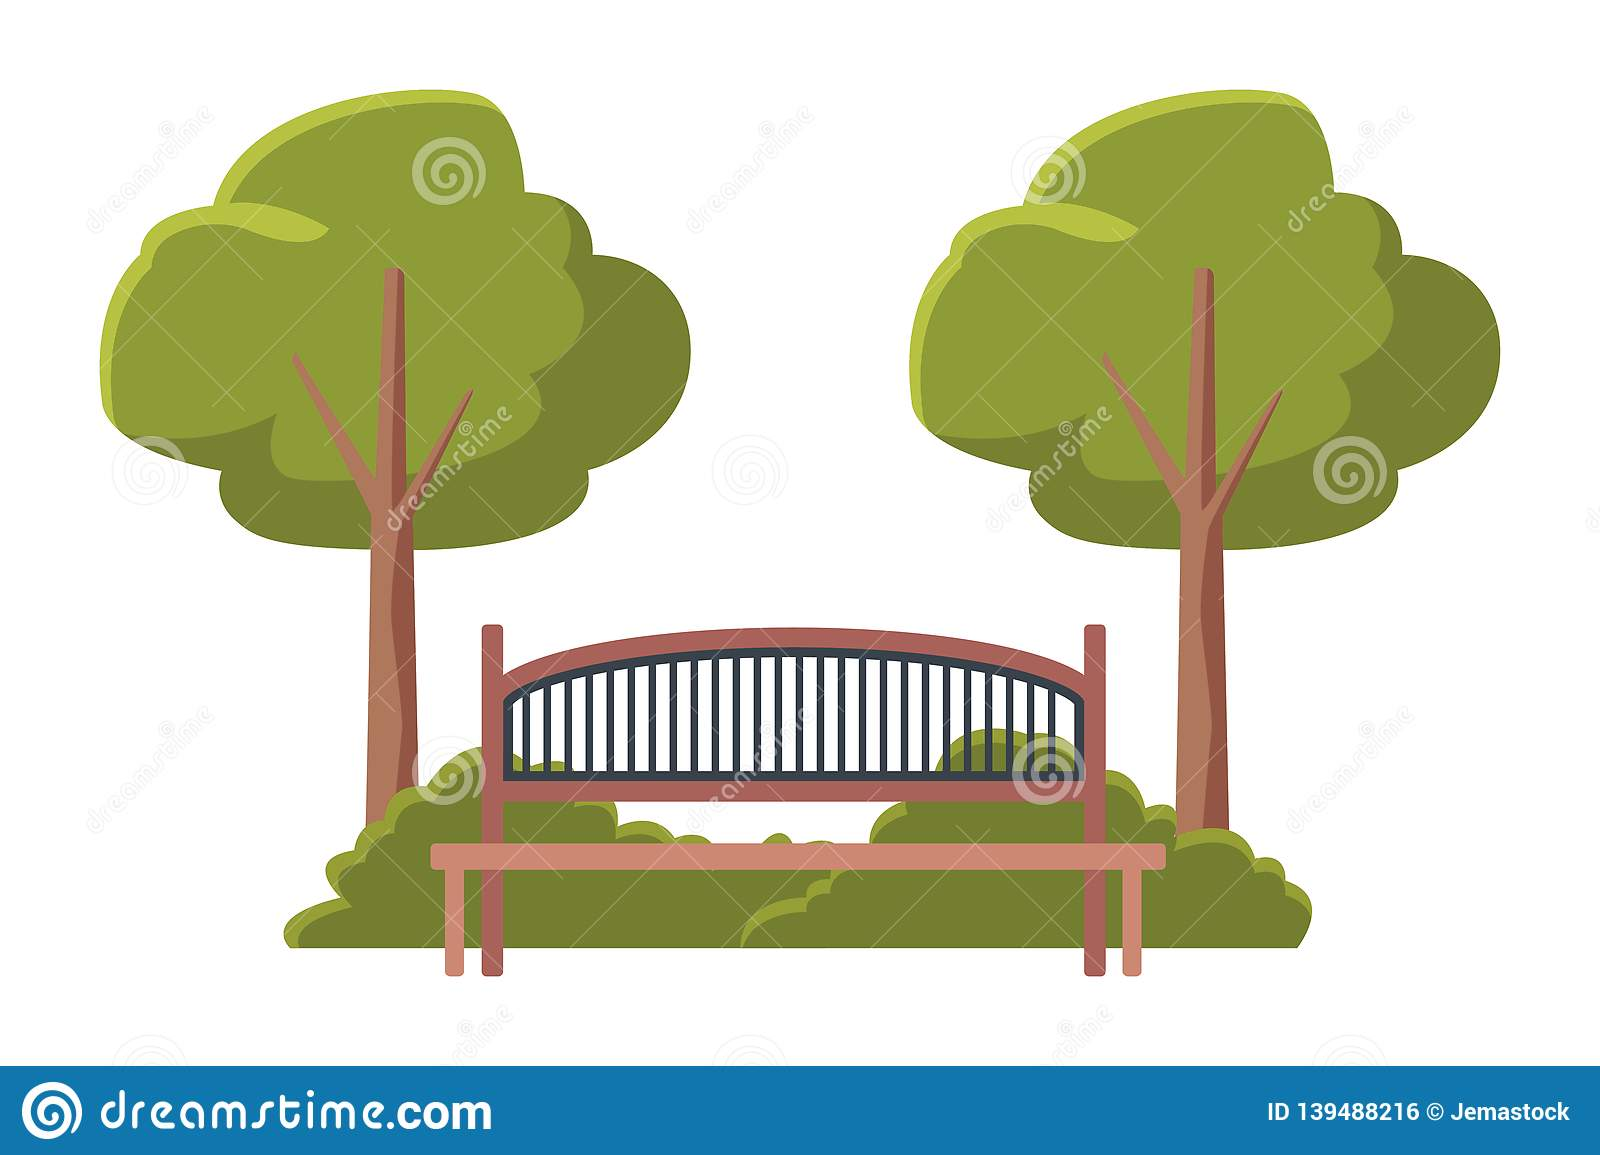 Fabulous Bench Wooden Furniture Stock Vector Illustration Of Concept Machost Co Dining Chair Design Ideas Machostcouk